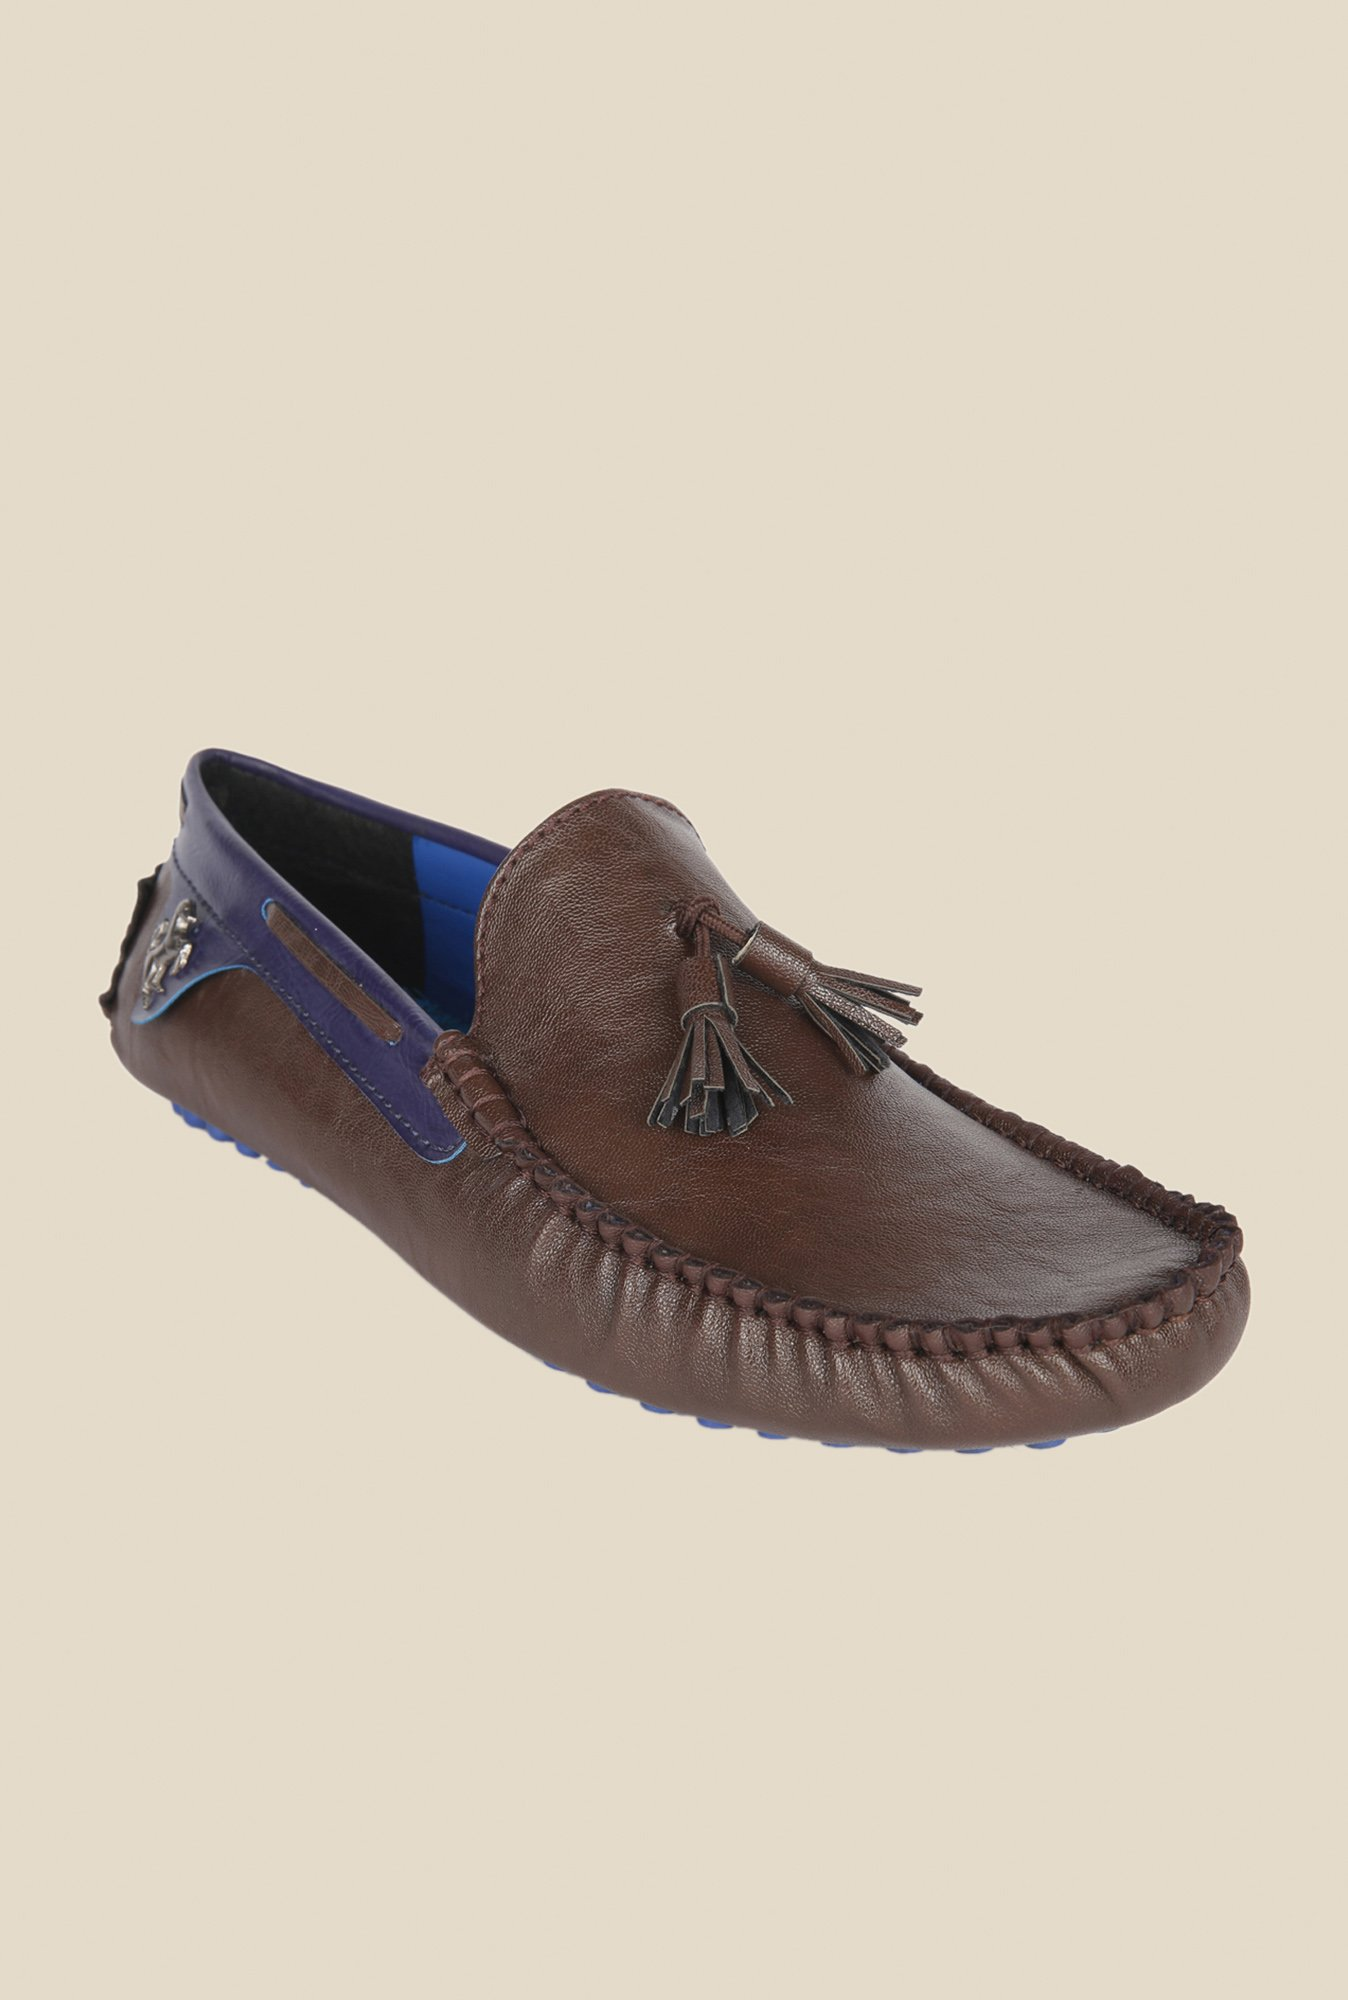 Wega Life Grast Brown & Blue Loafers